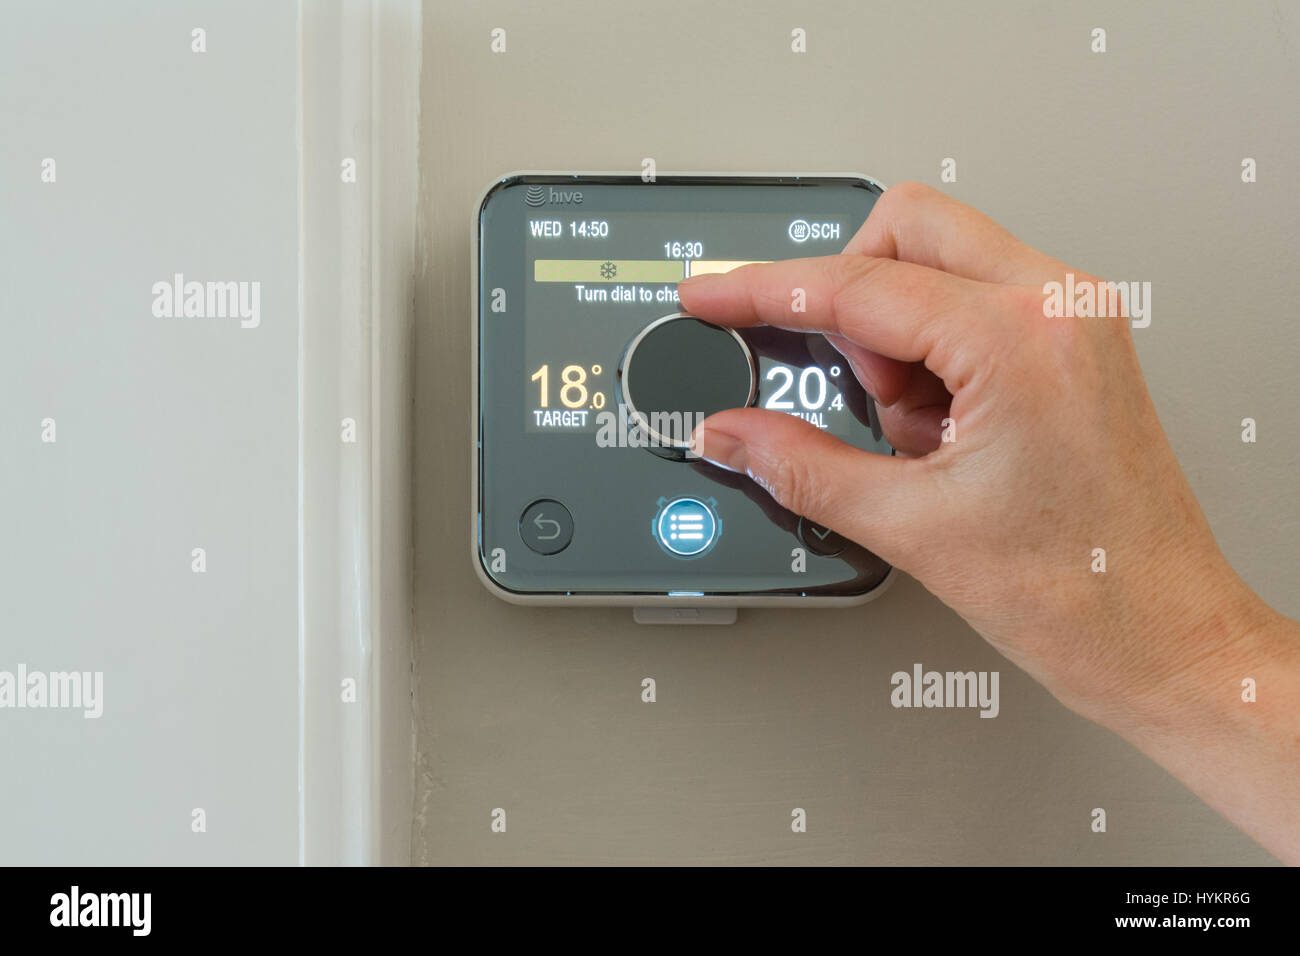 Hive heating thermostat being turned down by female hand - Stock Image